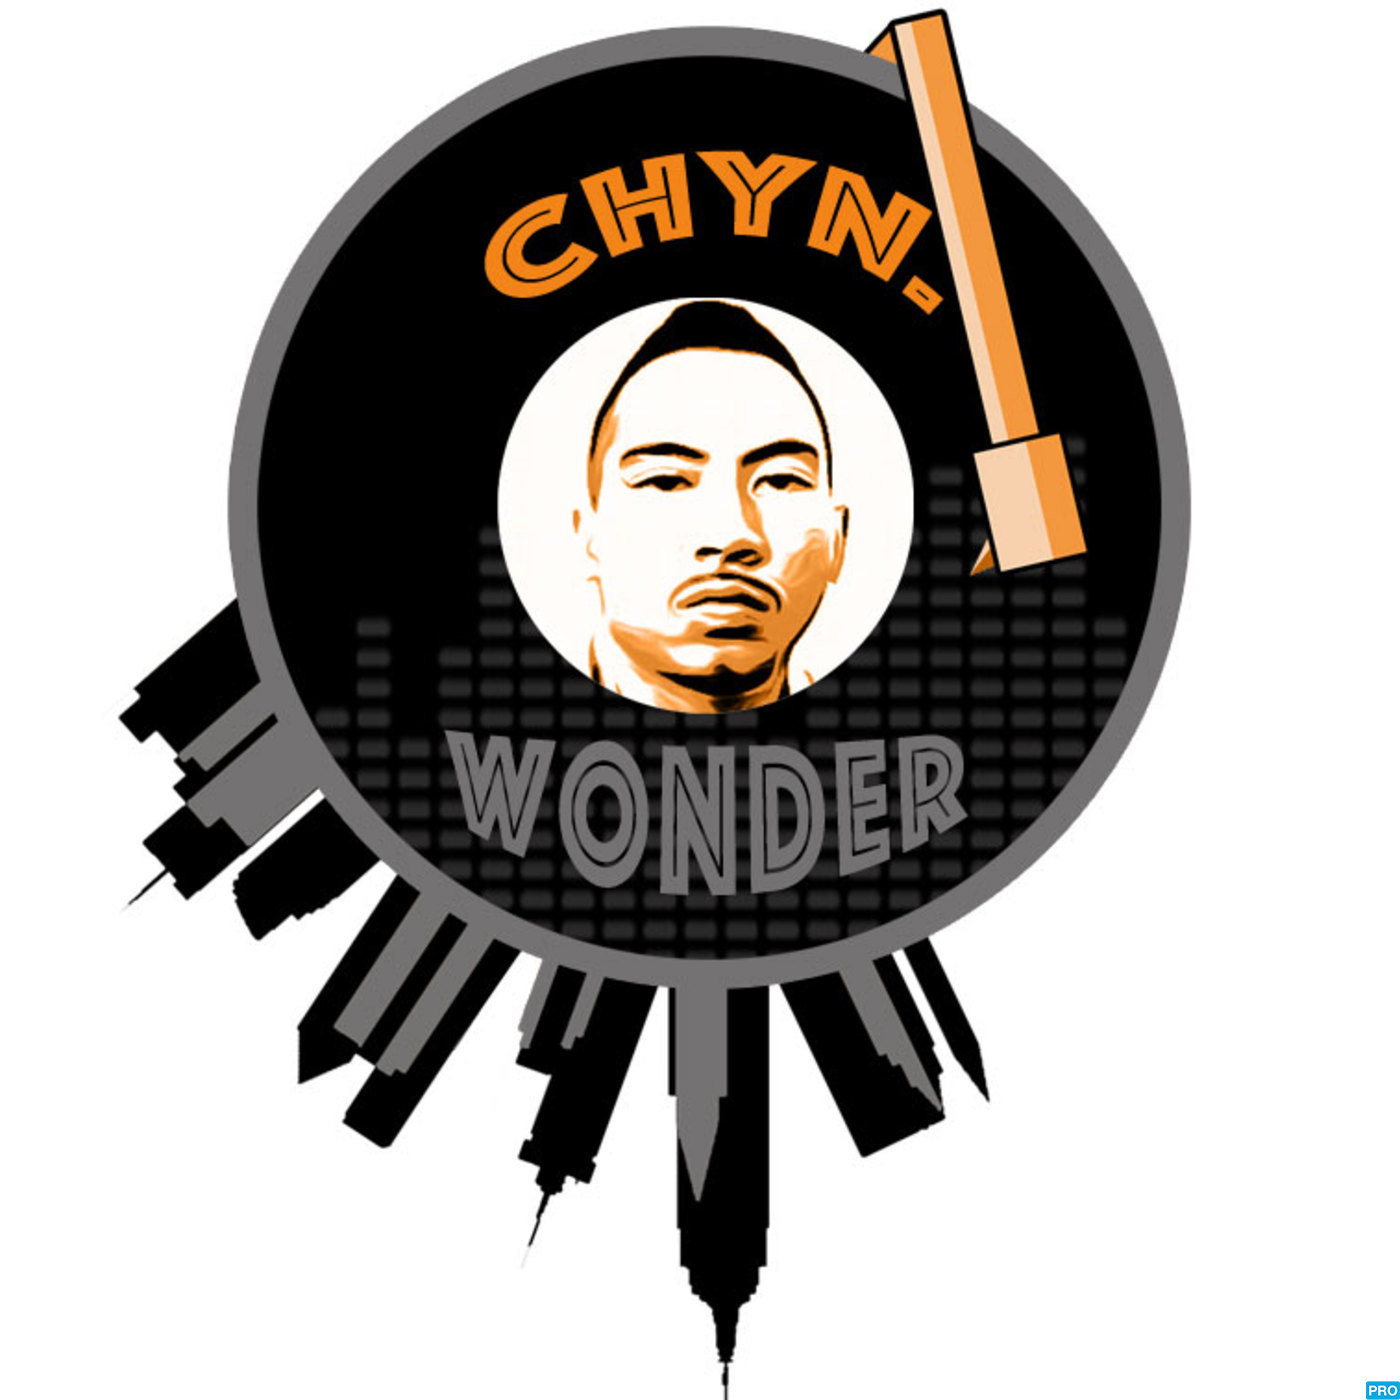 Chyn. Wonder Sounds